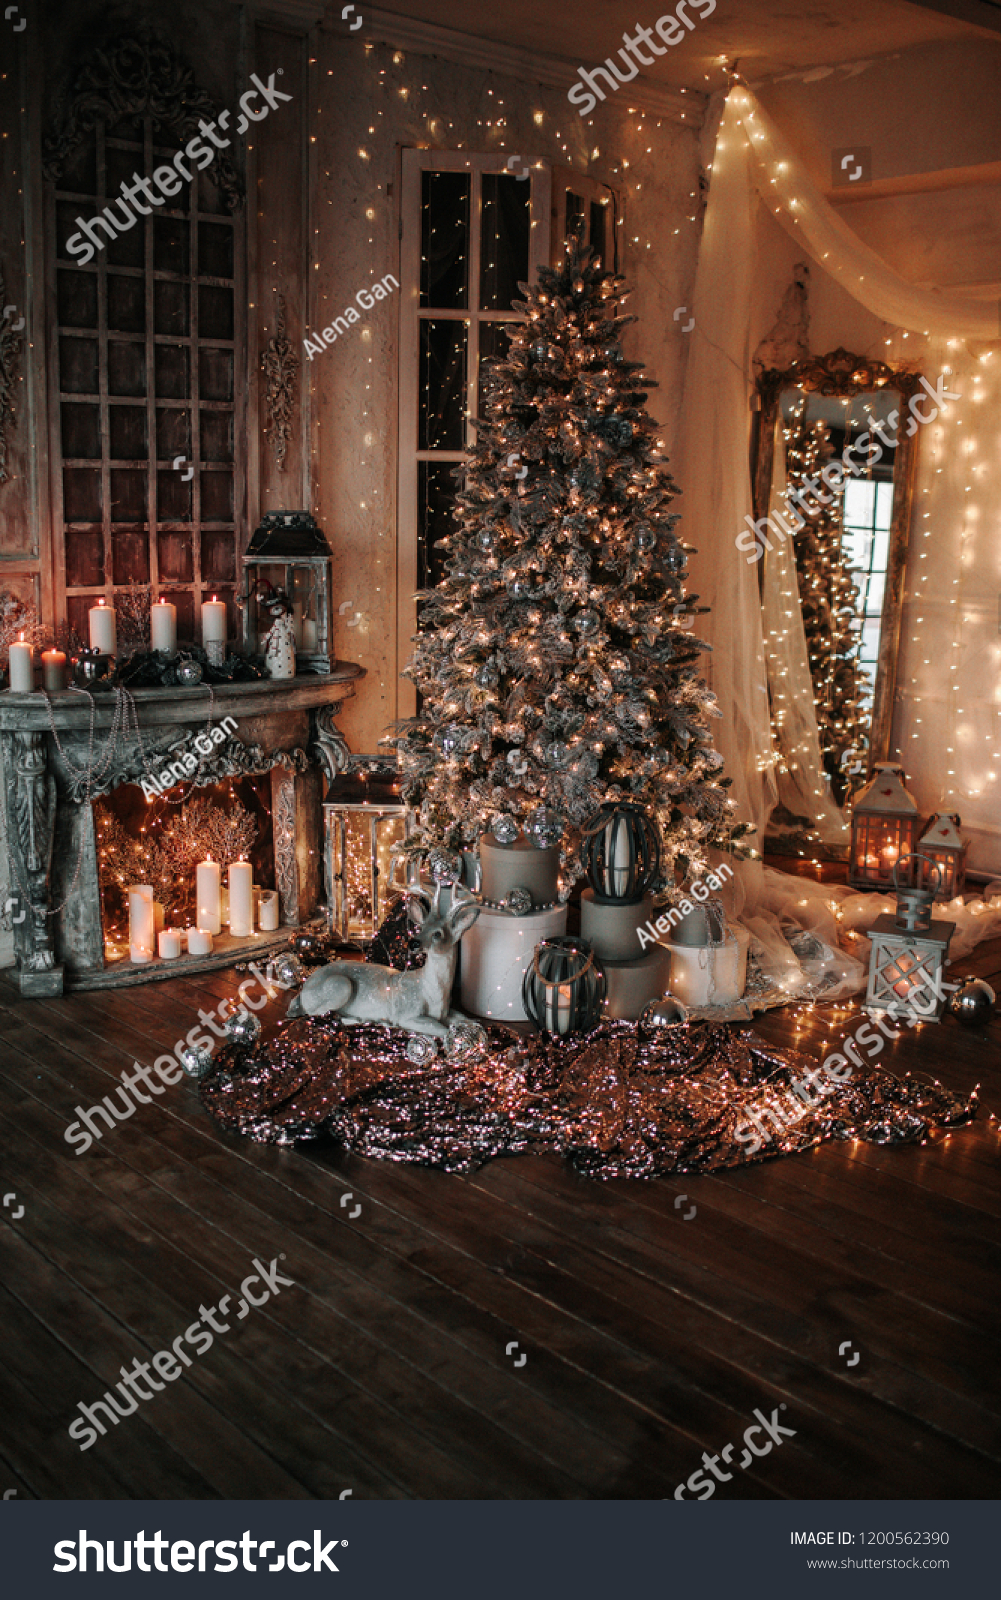 Warm cozy evening christmas room interior stock photo edit now